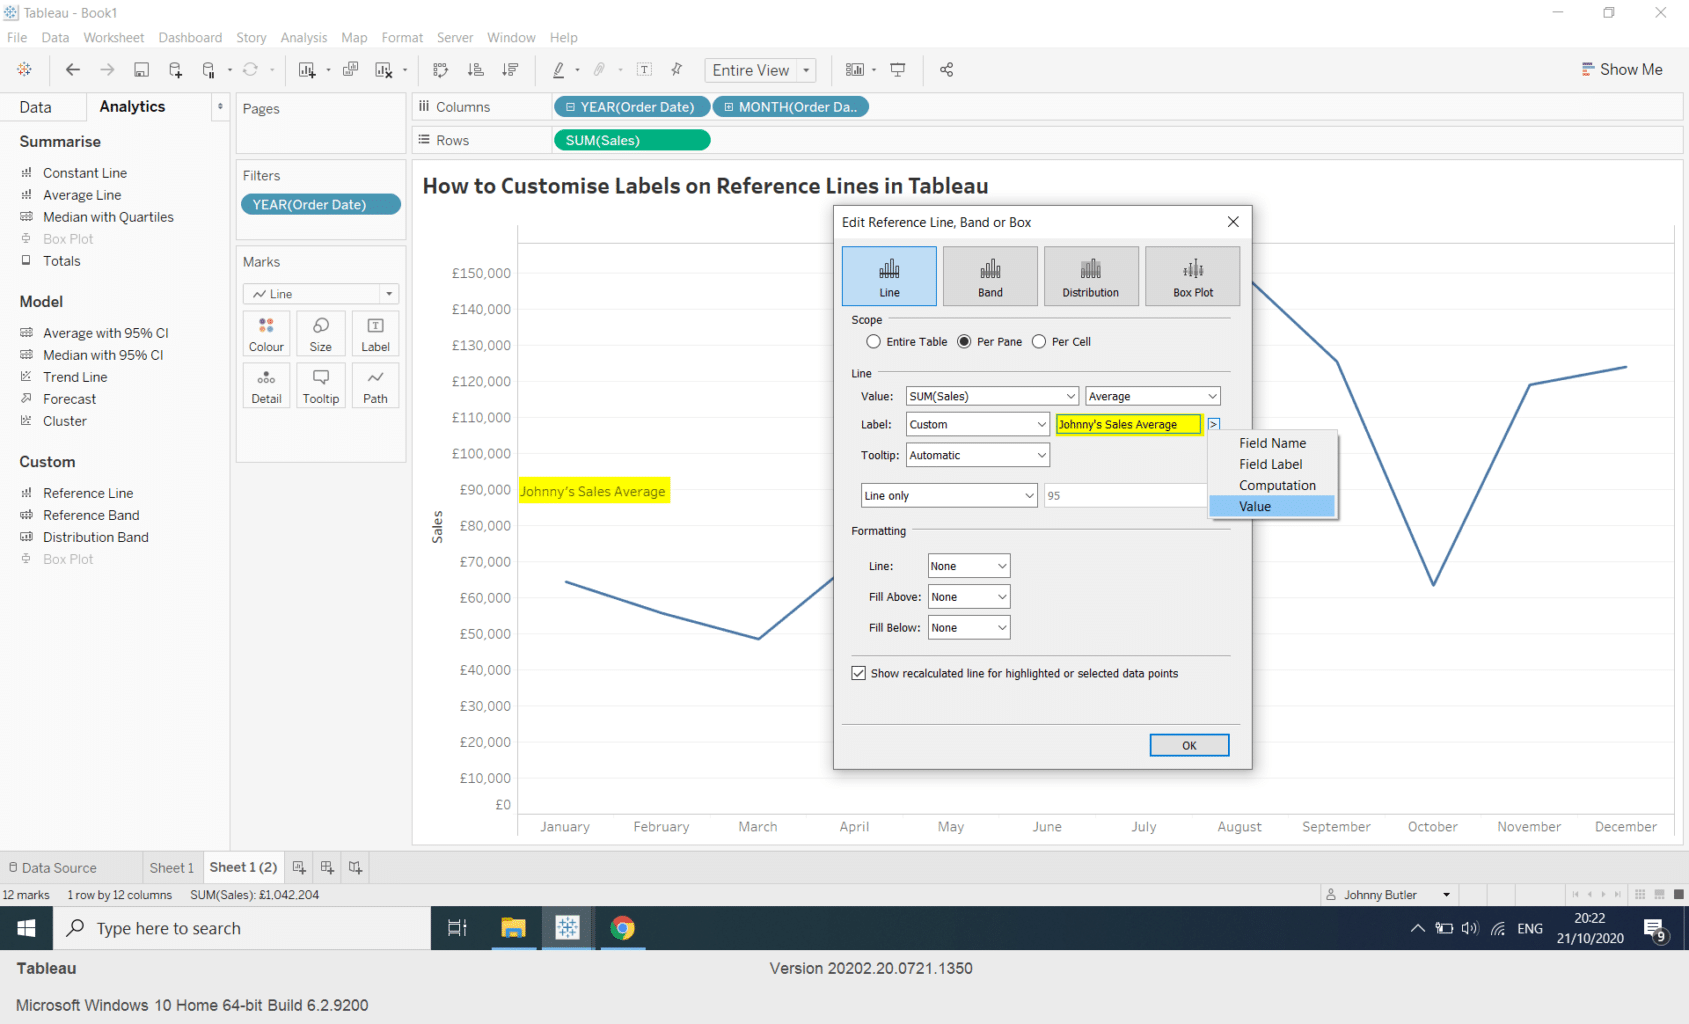 How do I Customise Labels on Reference Lines in Tableau?